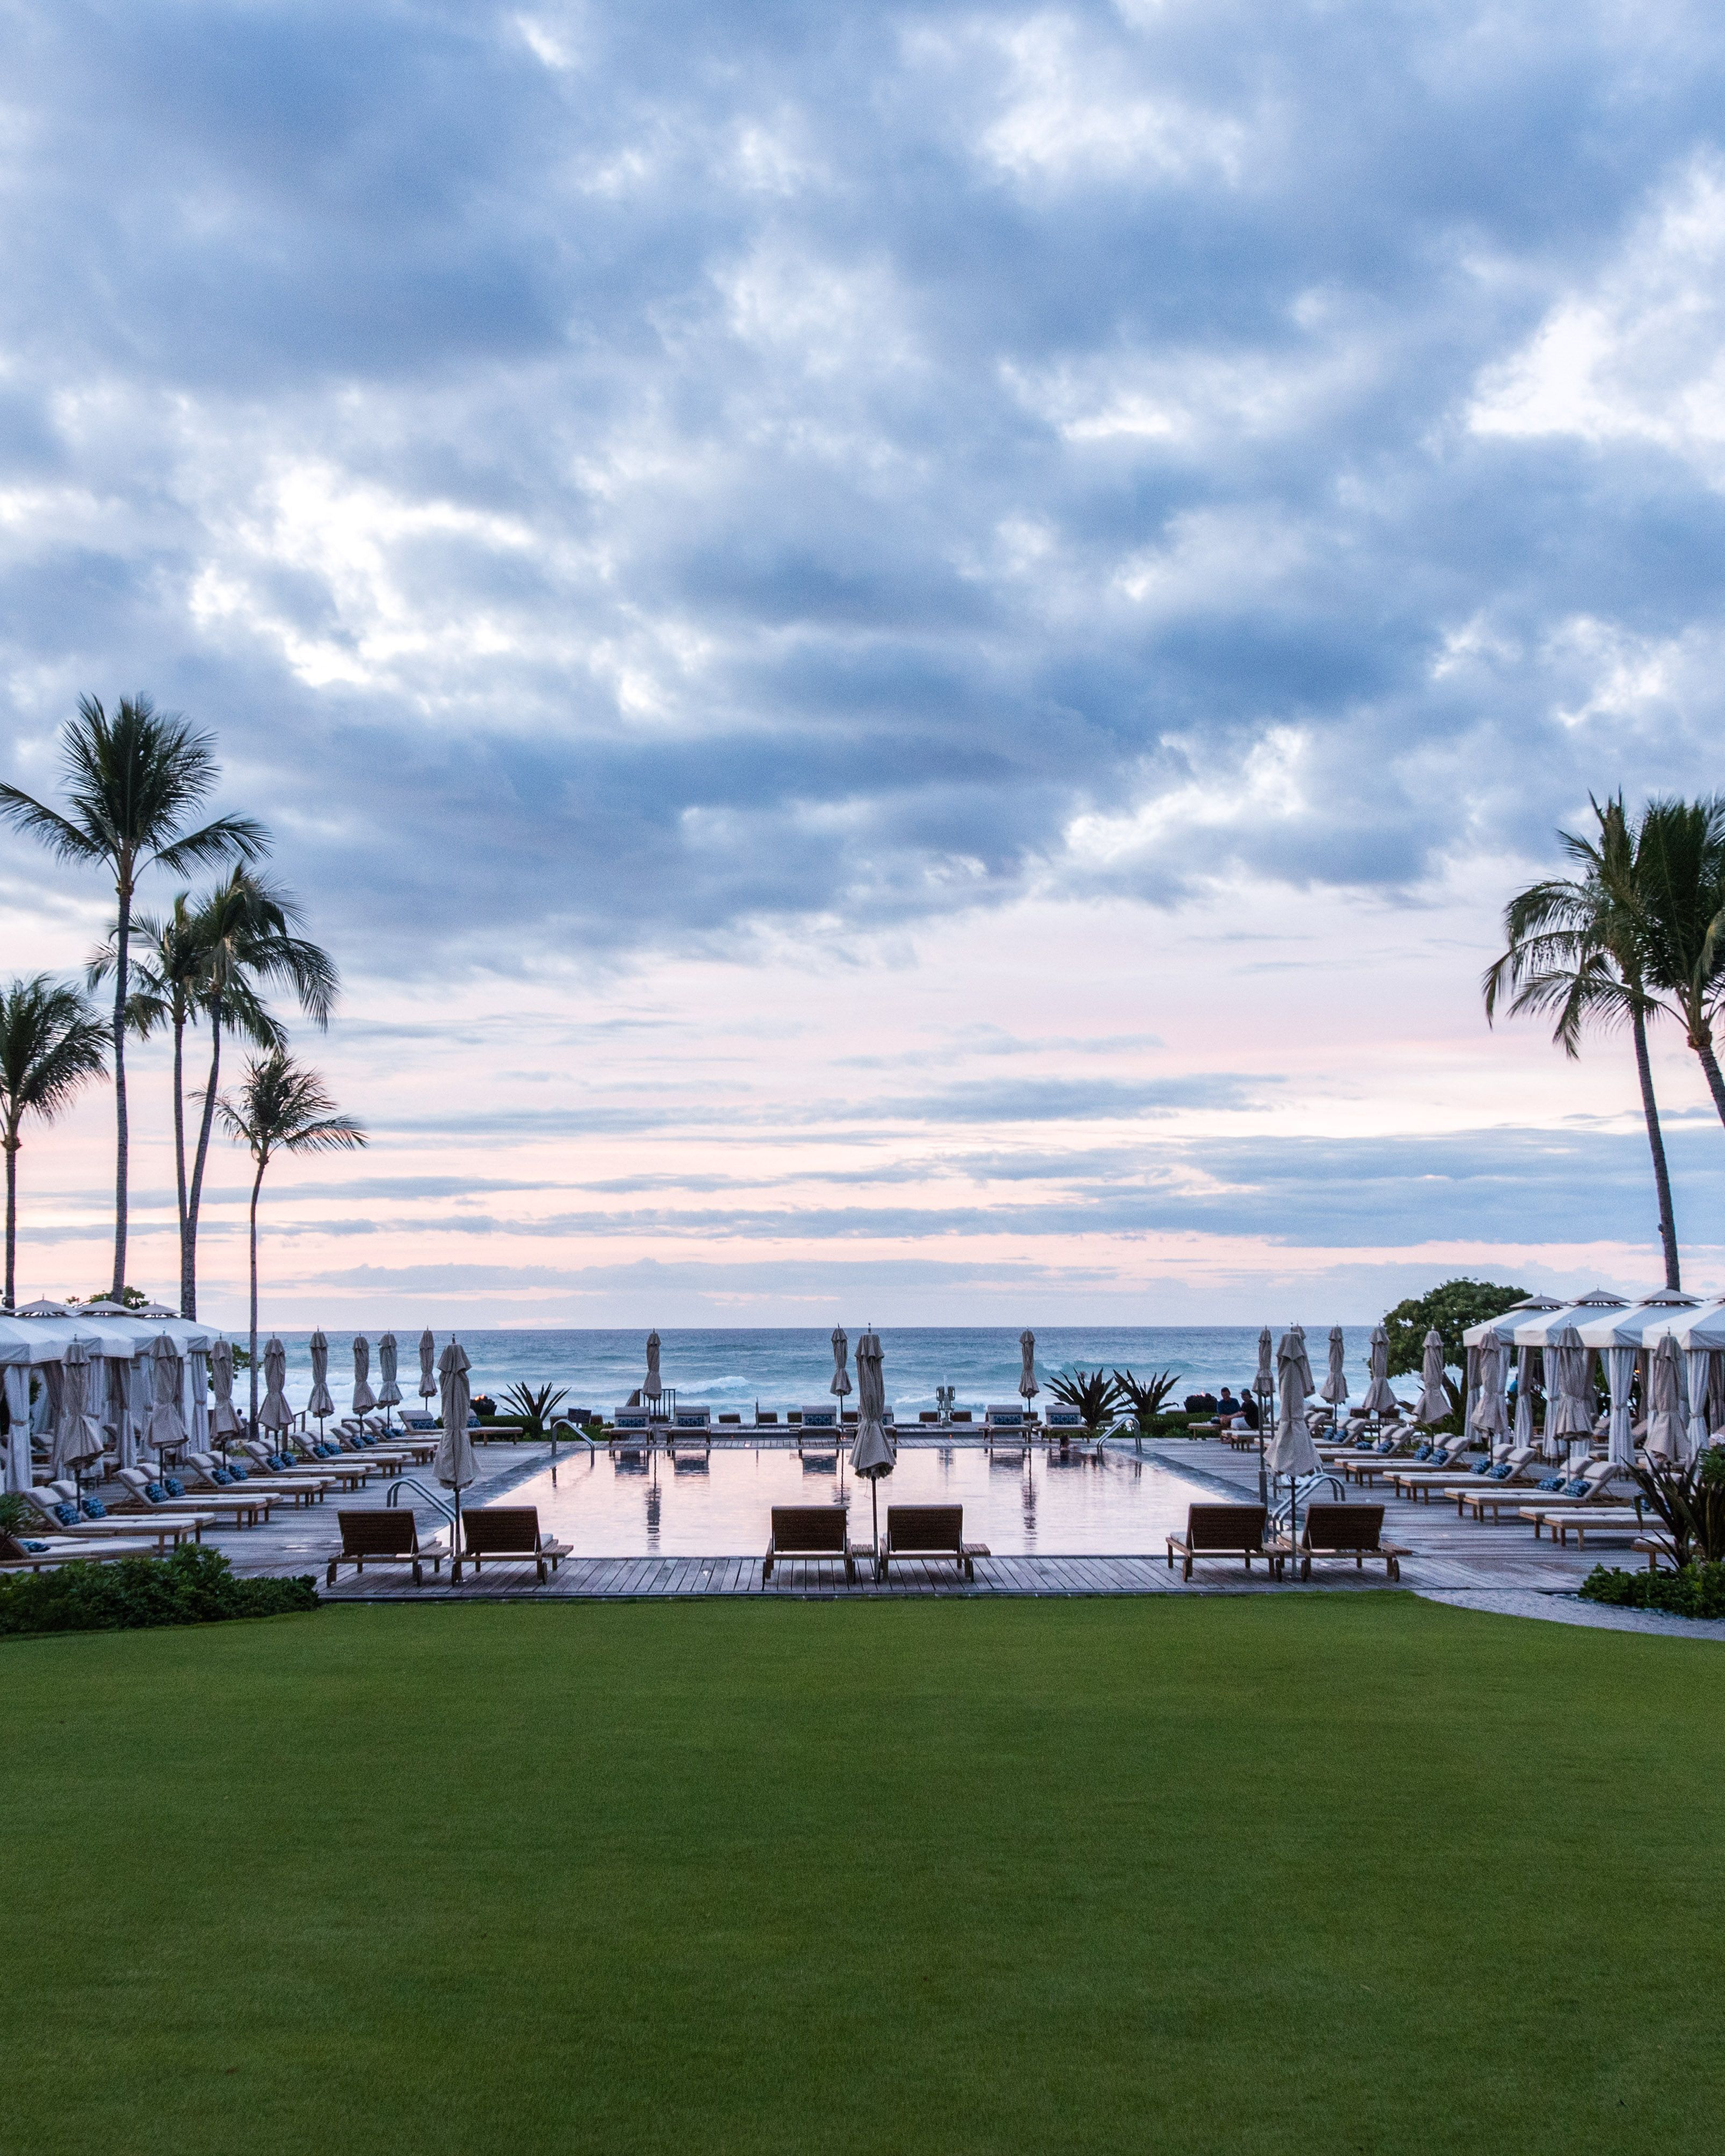 The Luxurious Four Seasons A Dreamy Hawaii Backdrop Your Next